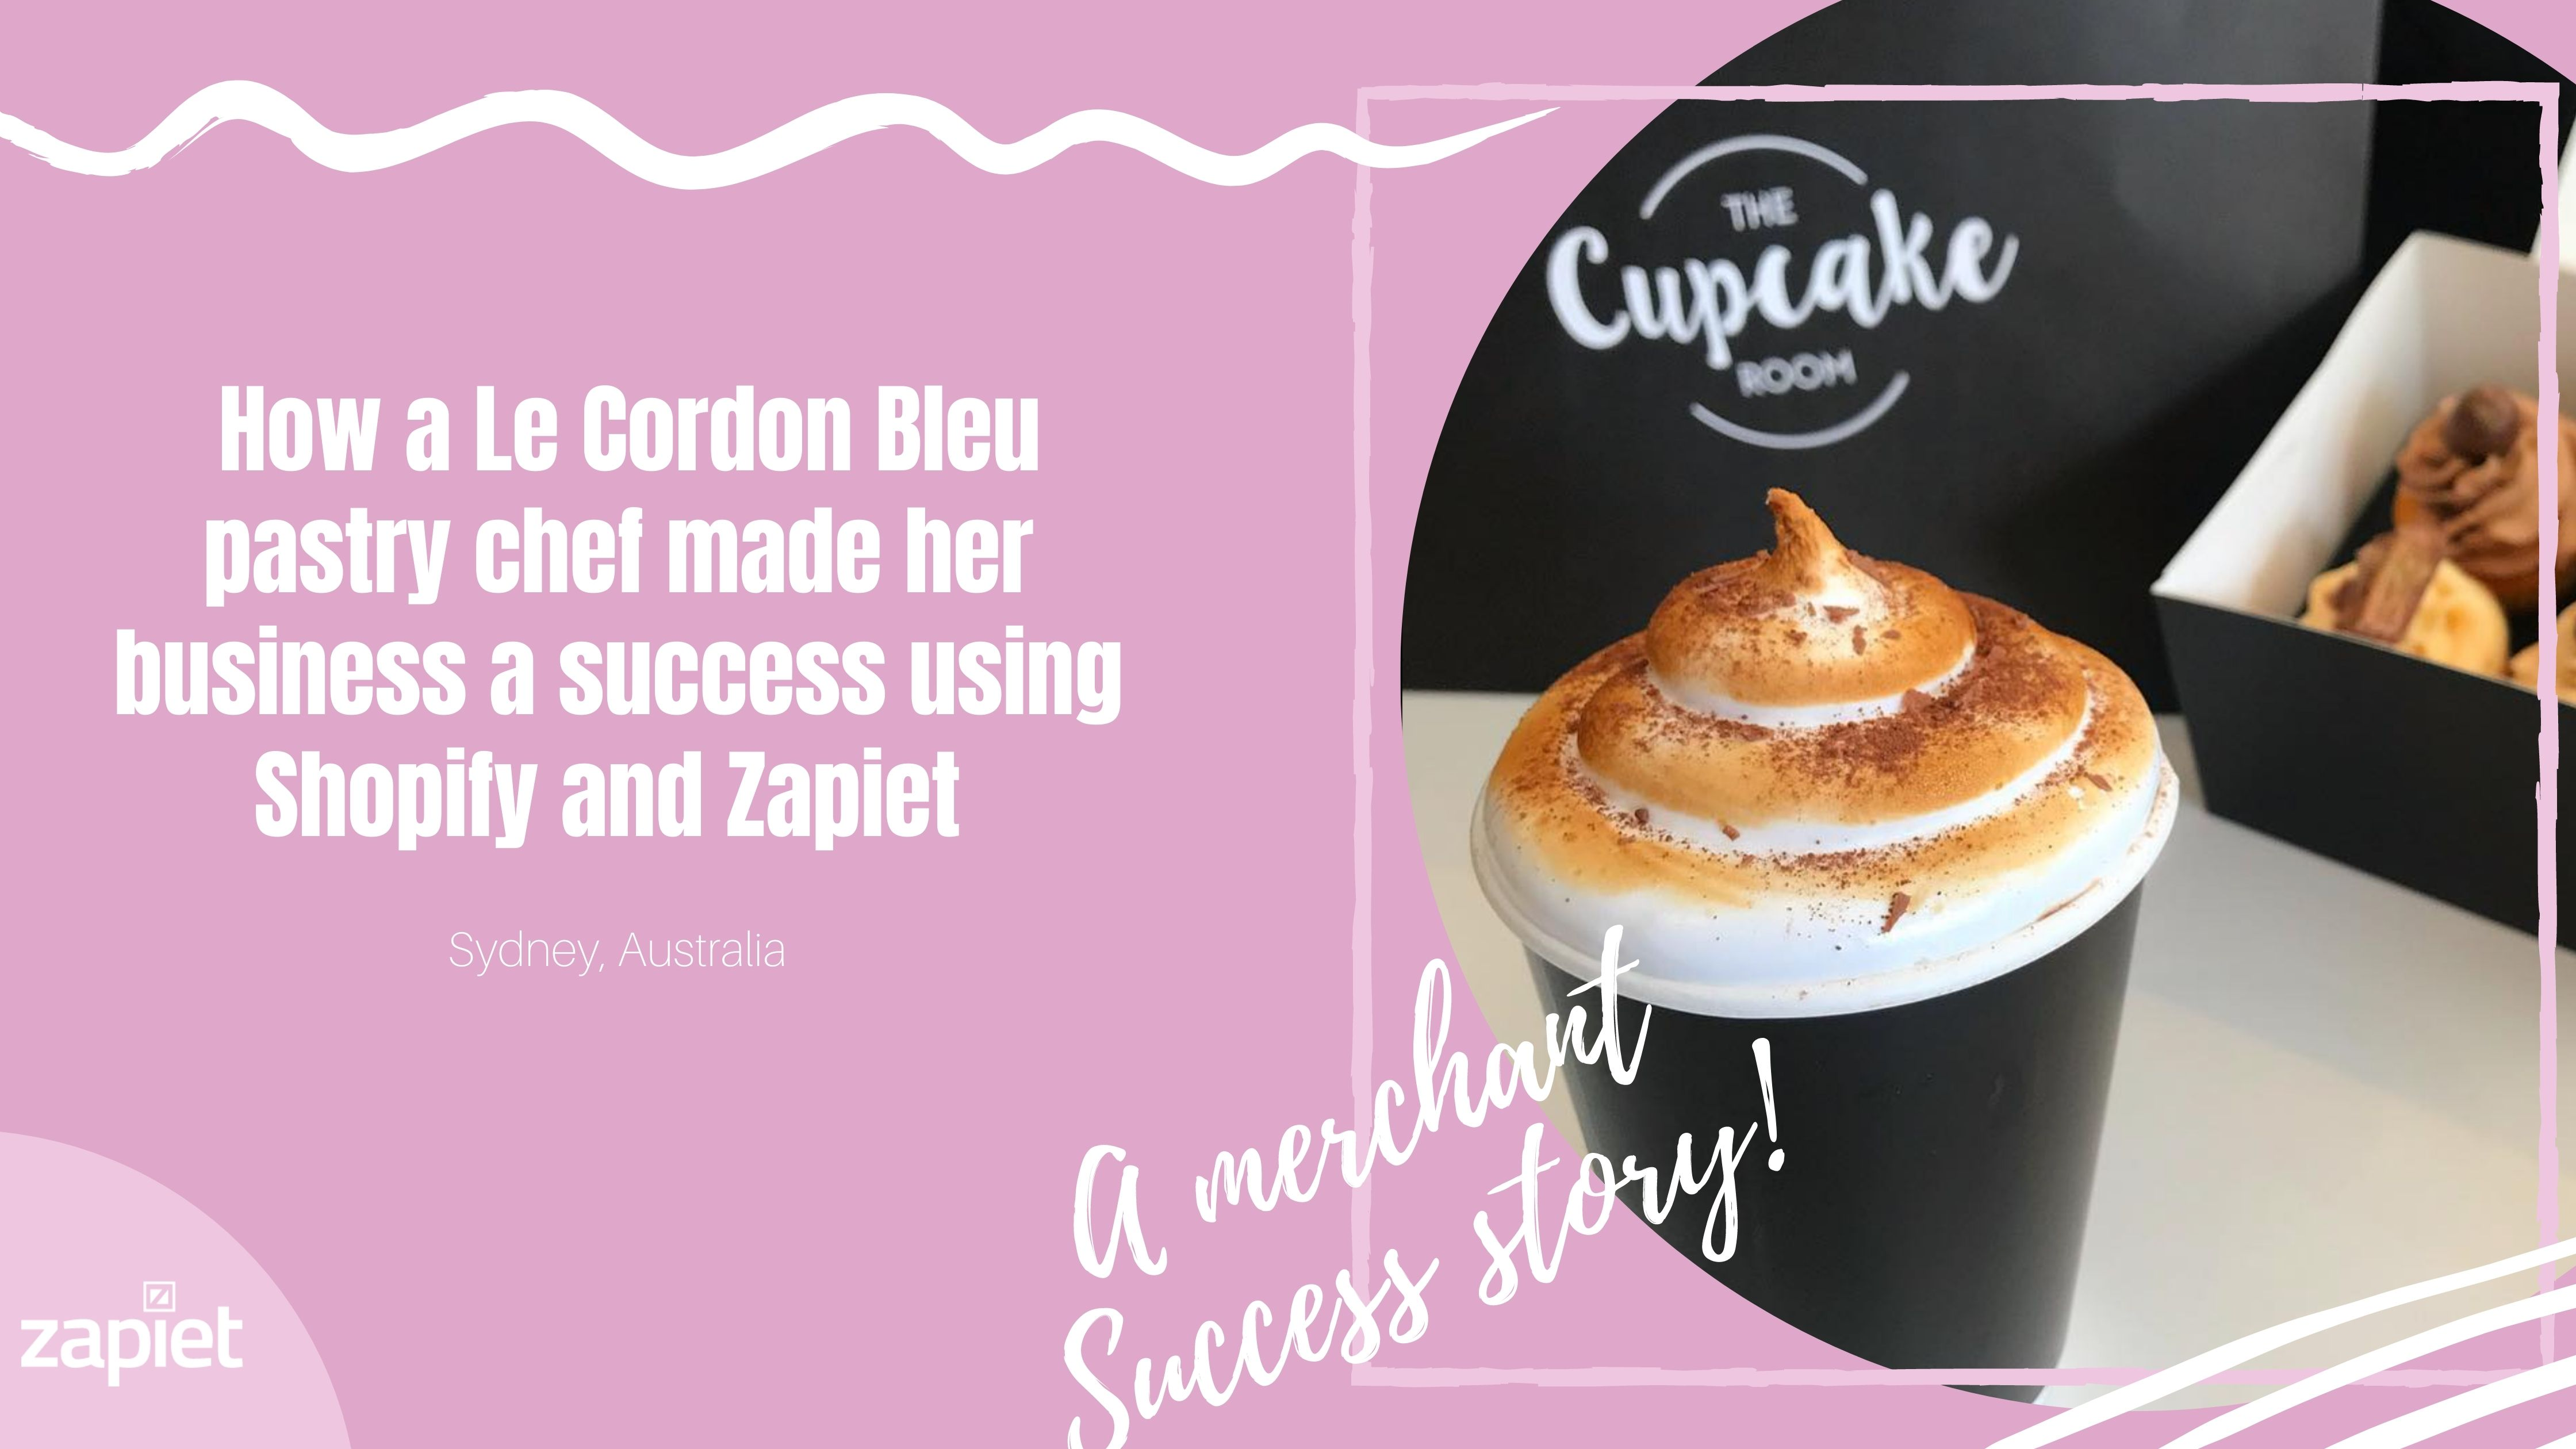 How a Le Cordon Bleu pastry chef made her business a success with Shopify and Zapiet